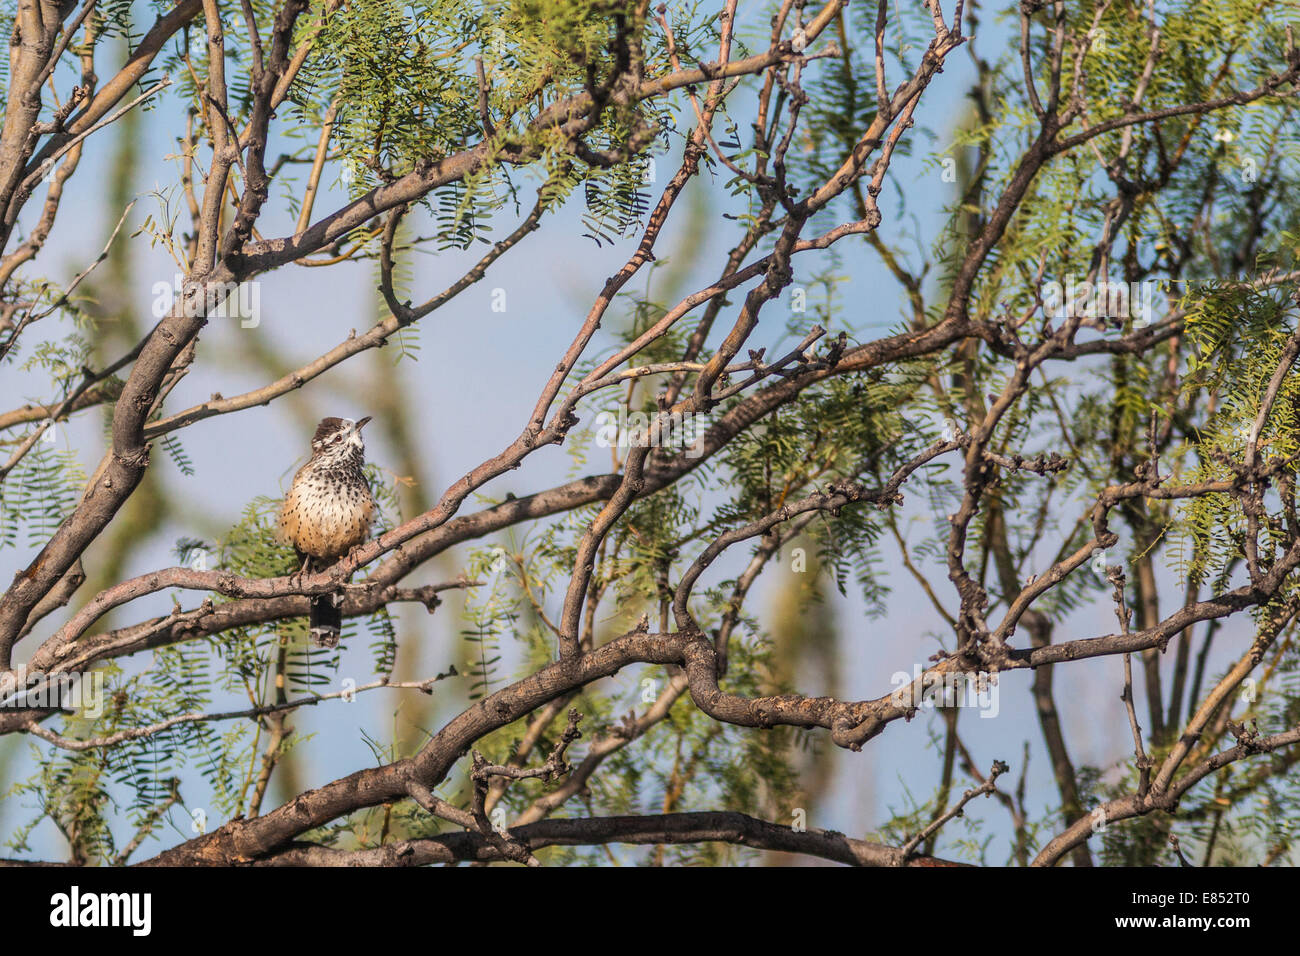 Cactus Wren in Mesquite tree at Panther Junction in Big Bend National Park. Stock Photo